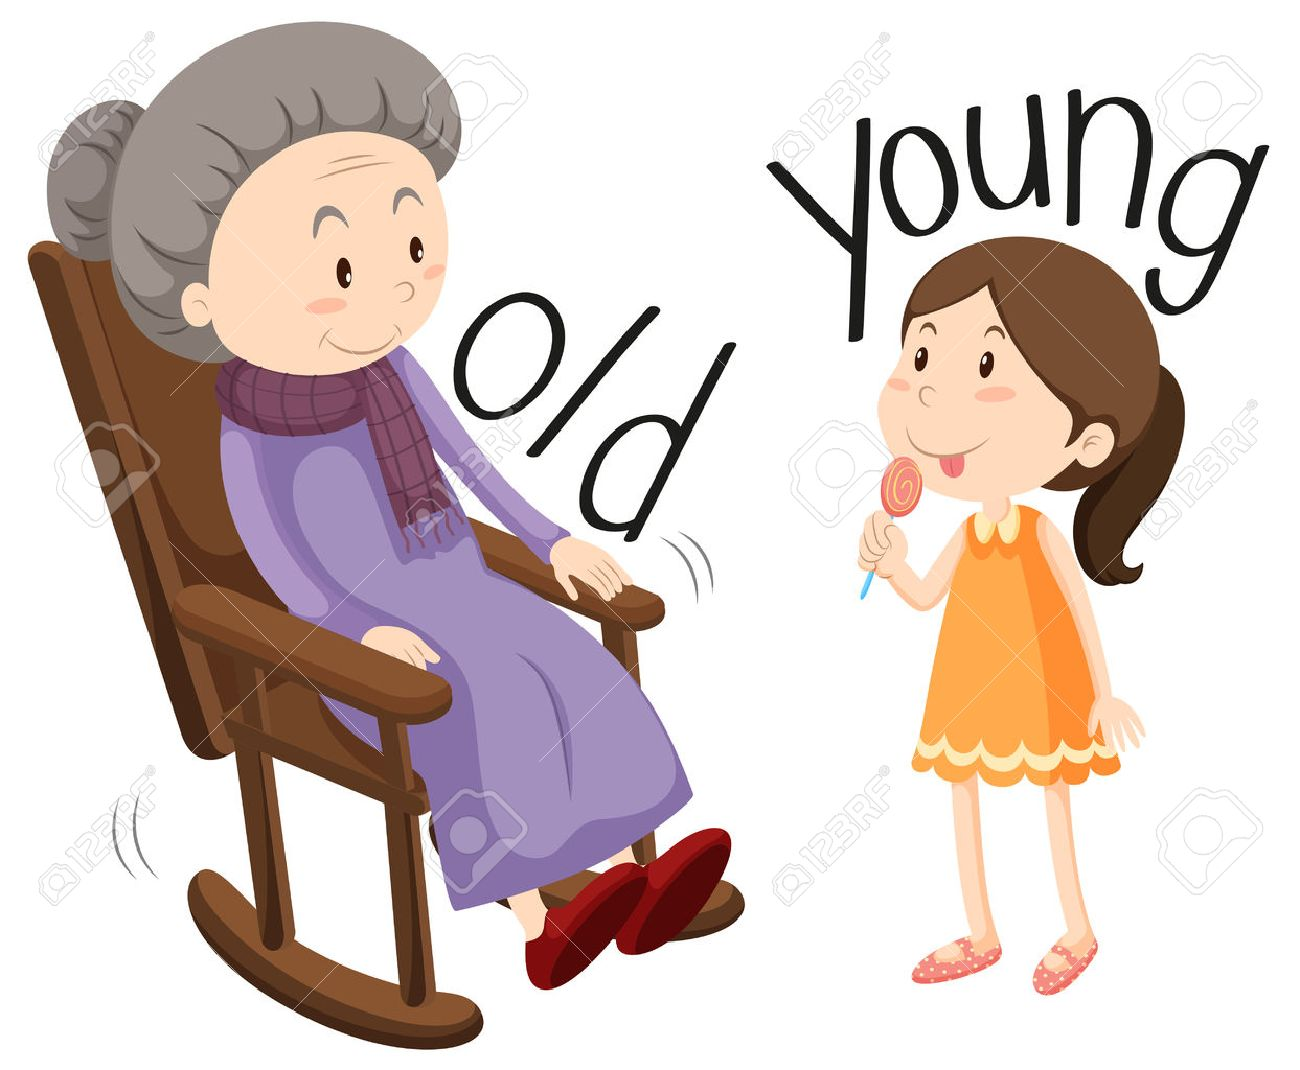 old & young